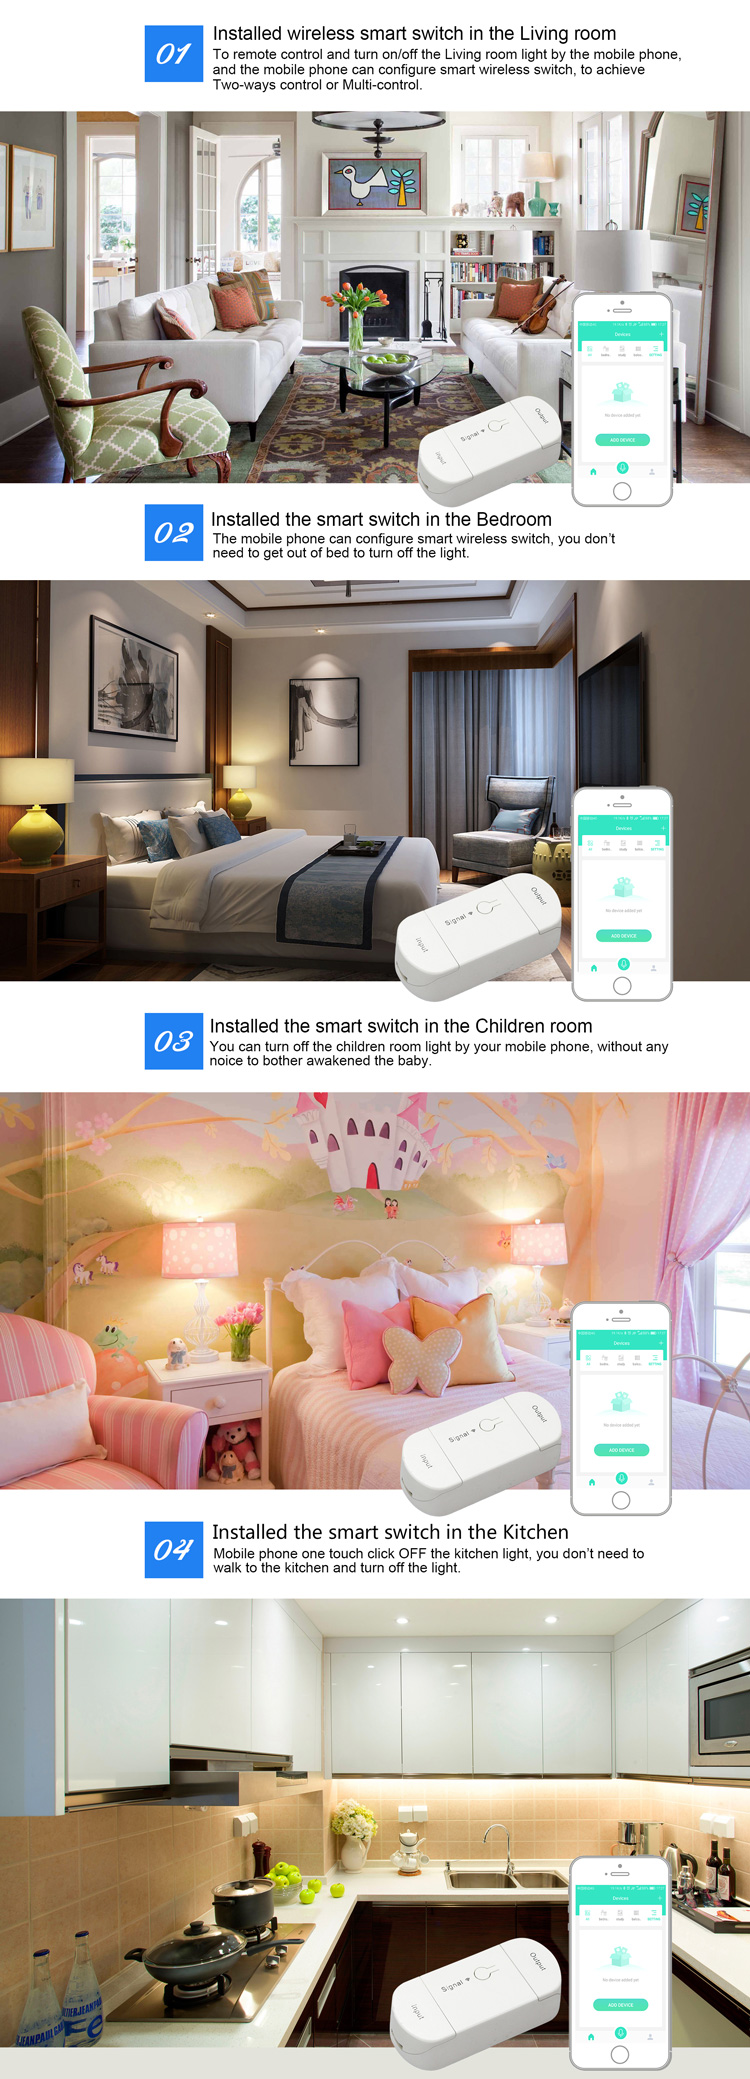 Remote control smart home wifi electrical switch 1Year warranty timer switch enabled Alexa Echo